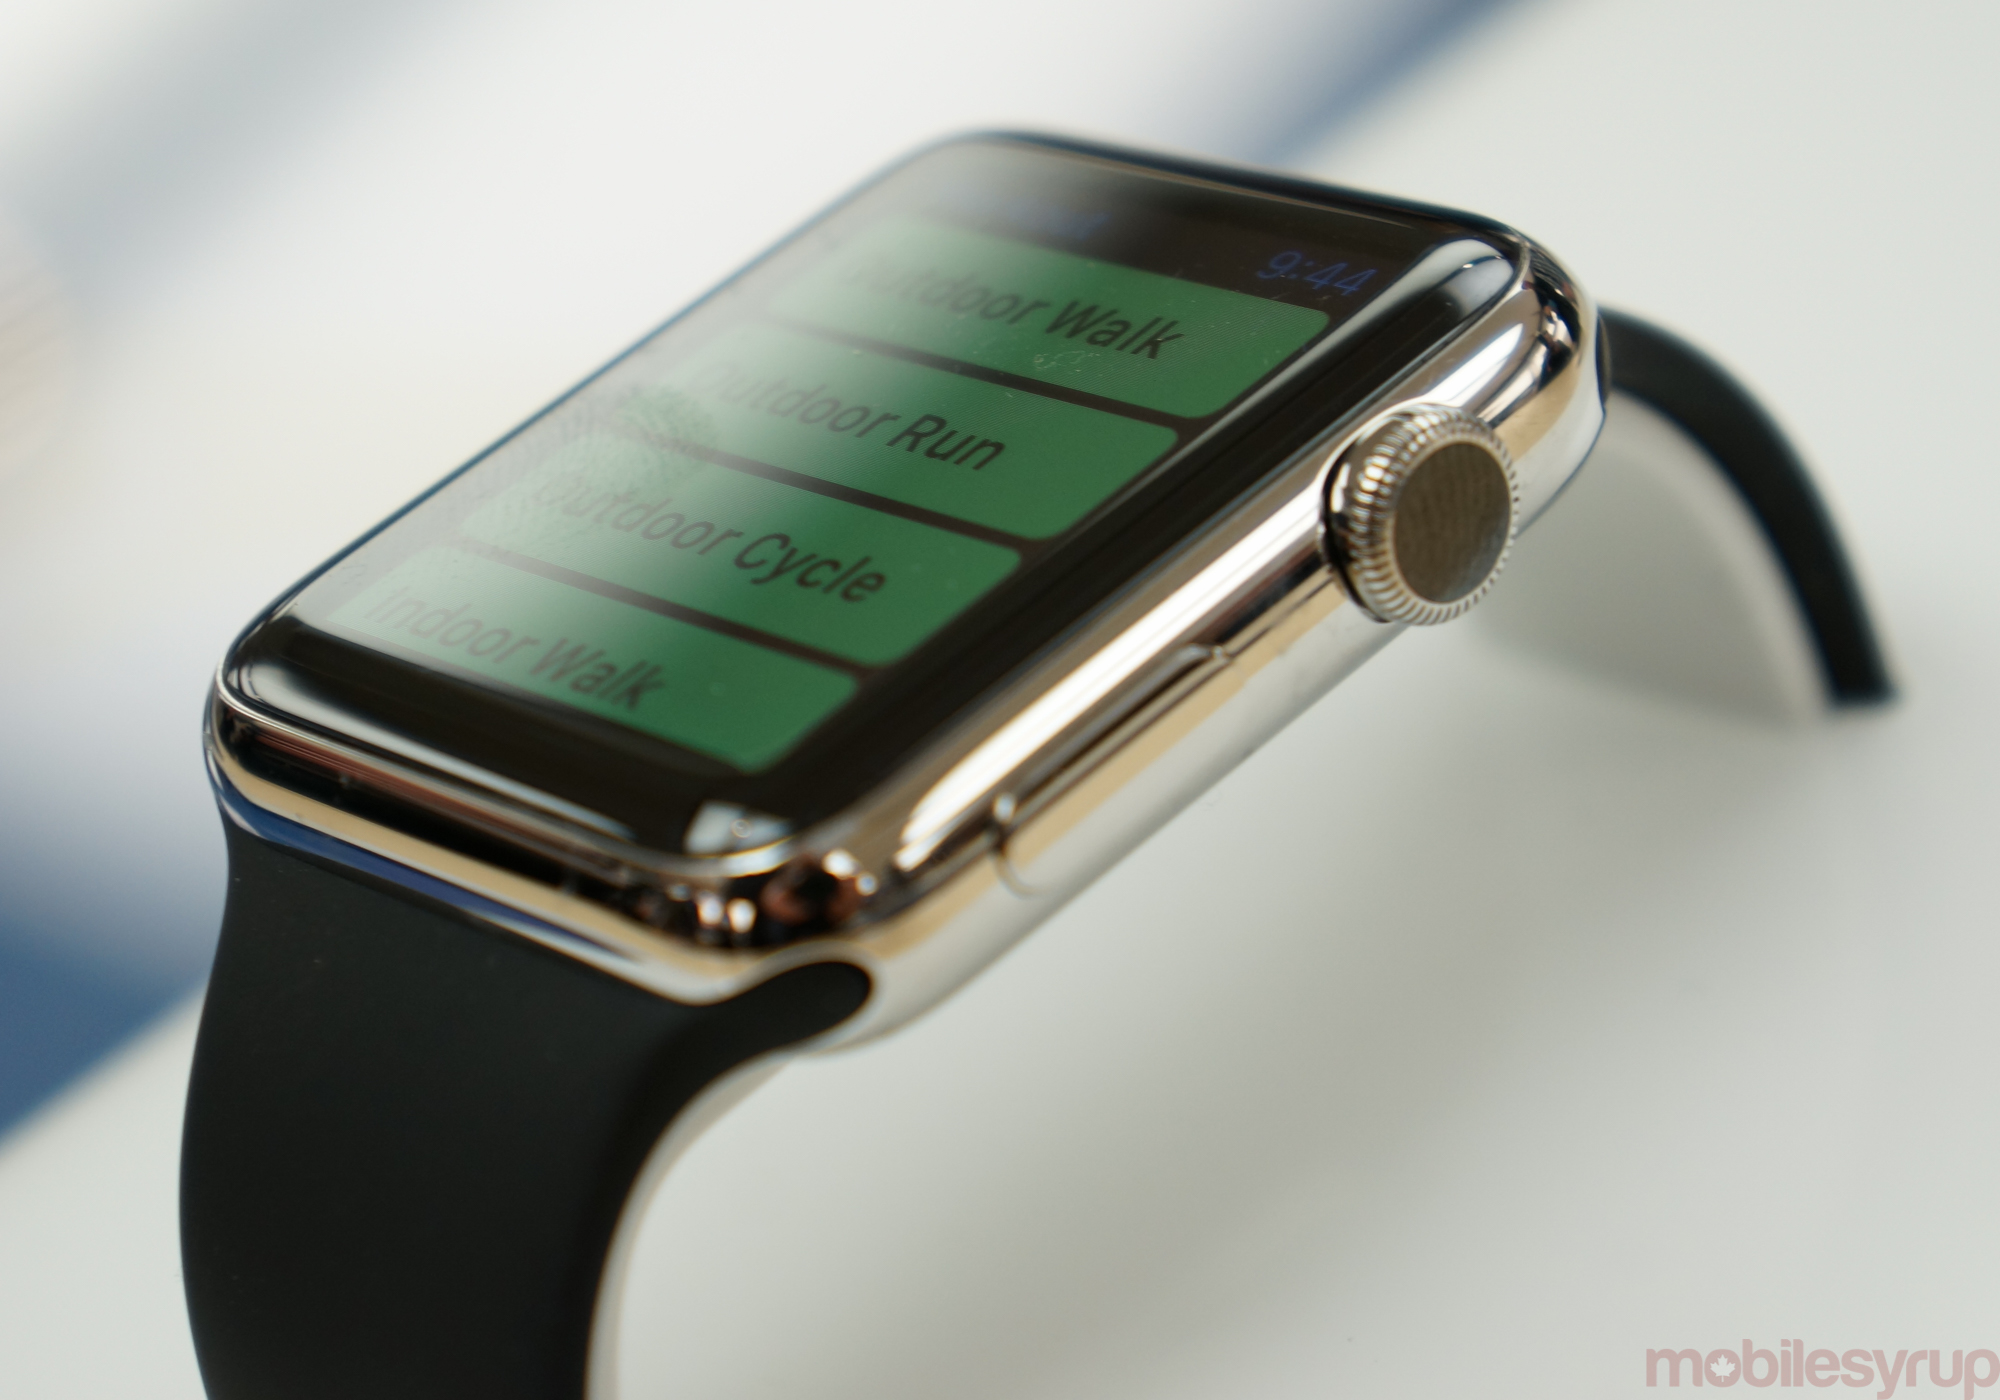 Scotiabank brings Apple Watch support to its iOS app